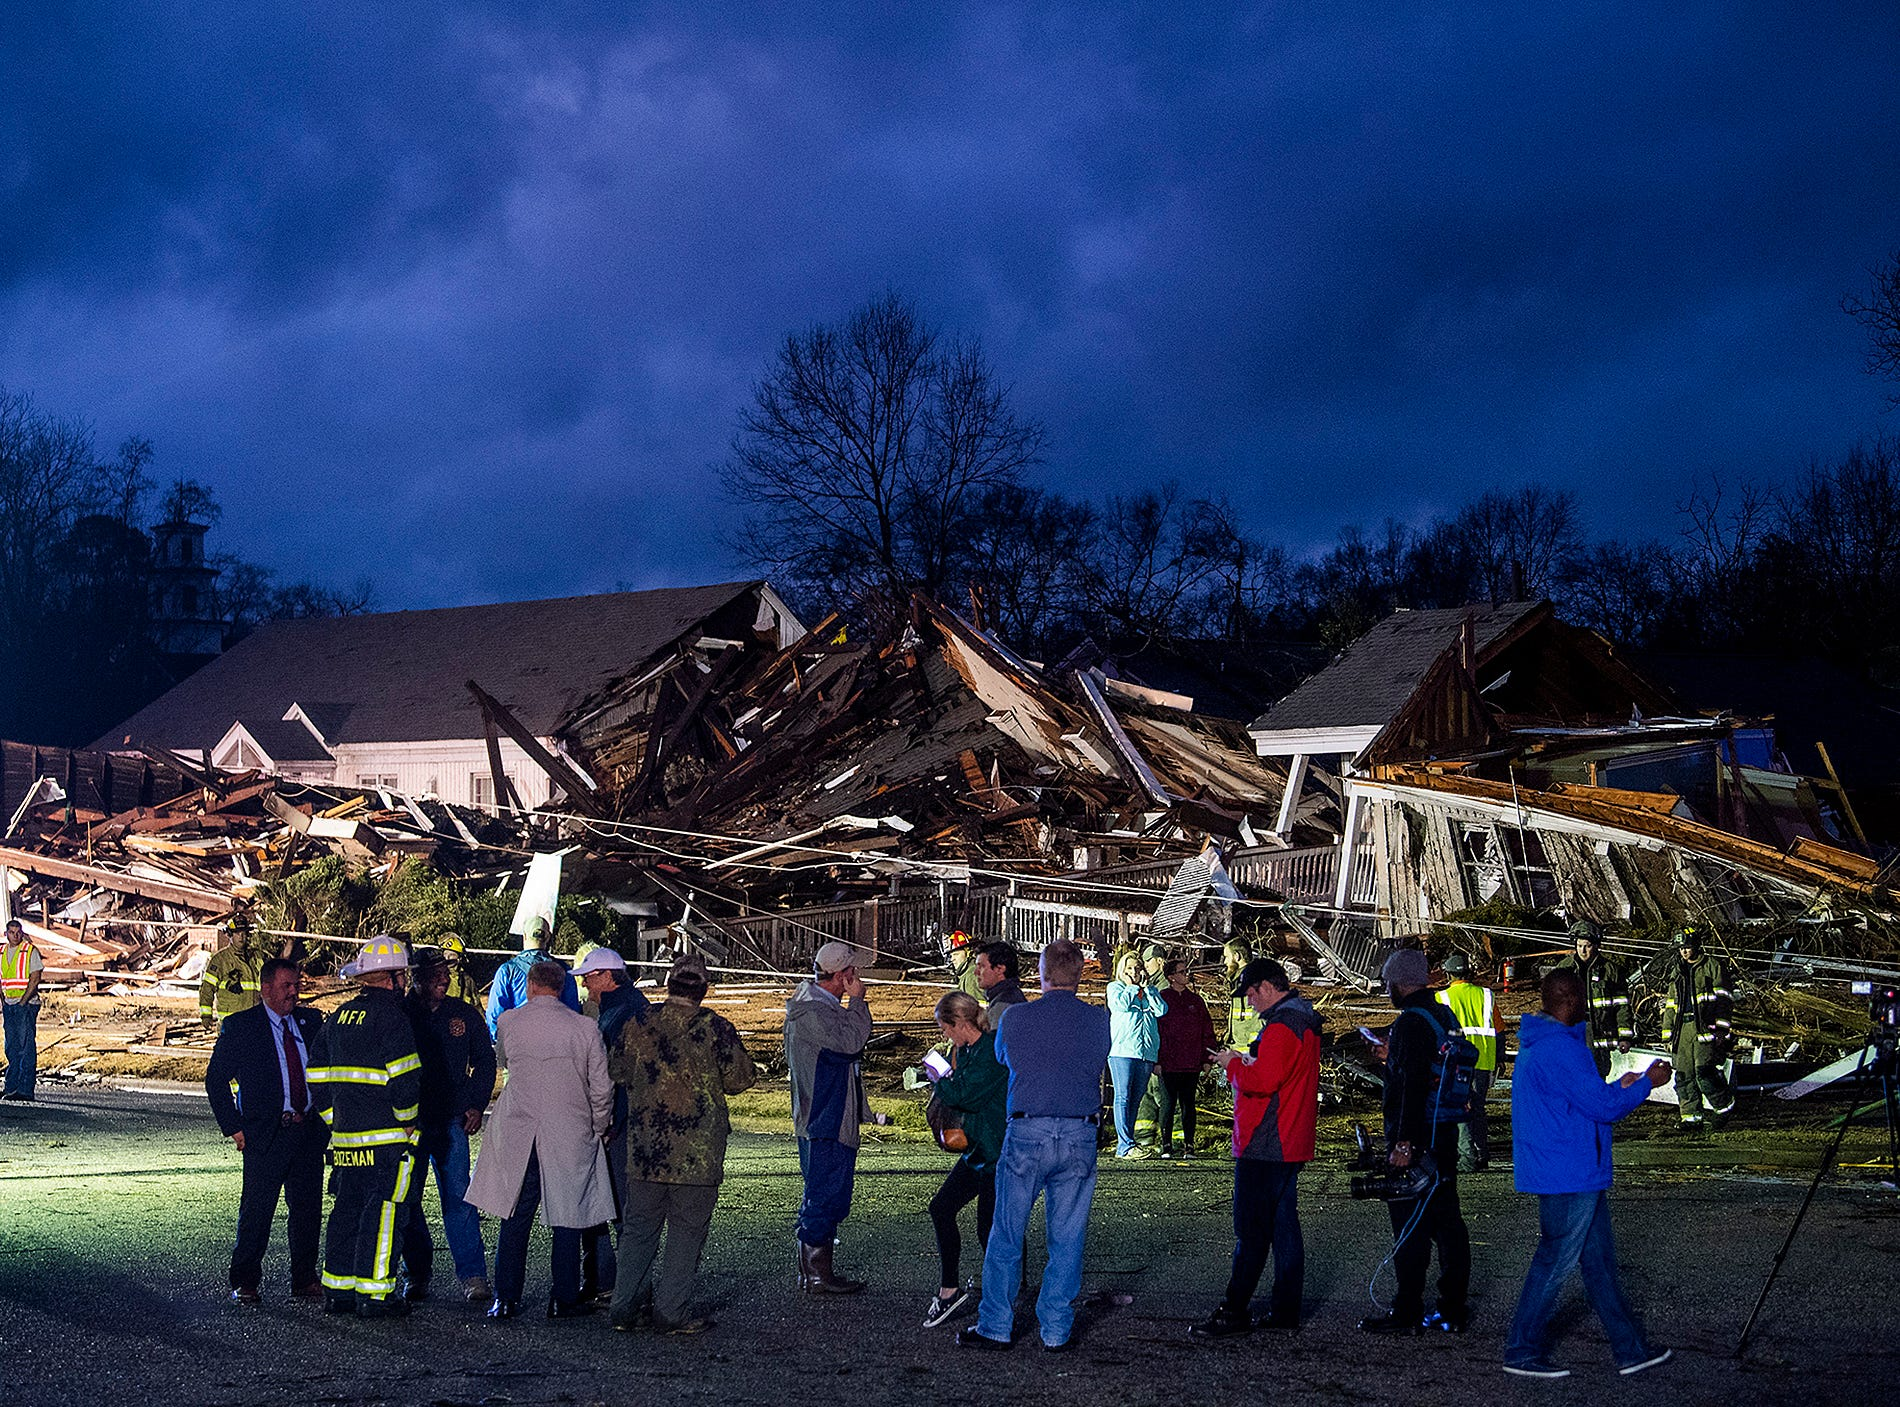 Night falls as damage from a tornado touchdown in Wetumpka, Ala., on Saturday afternoon January 19, 2019 is lit by emergency lighting.